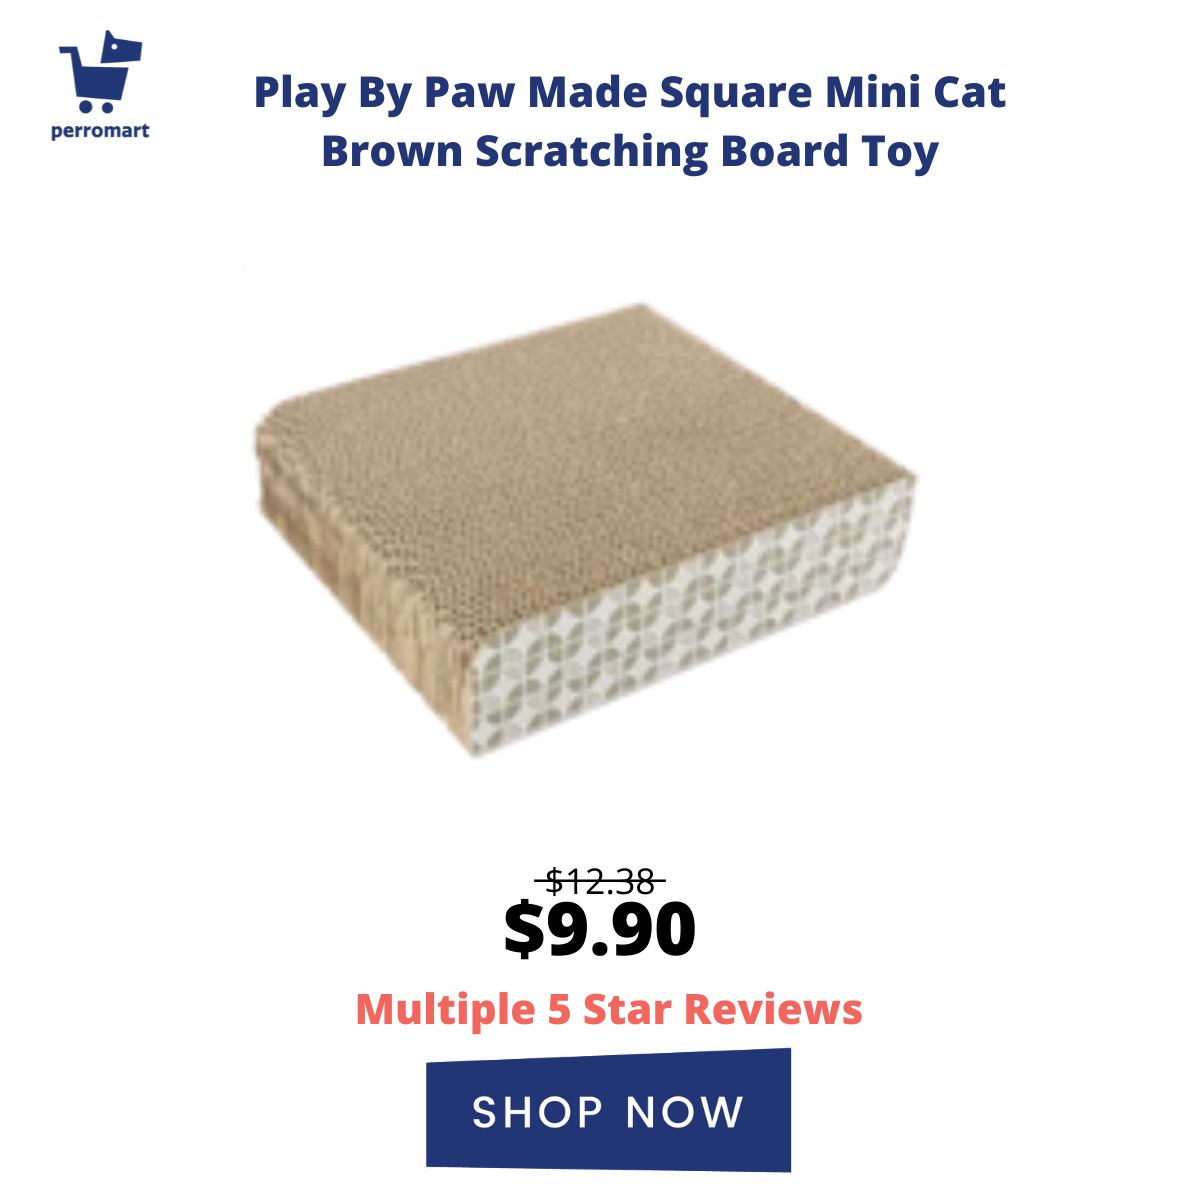 Play By Paw Made Square Mini Cat Brown Scratching Board Toy